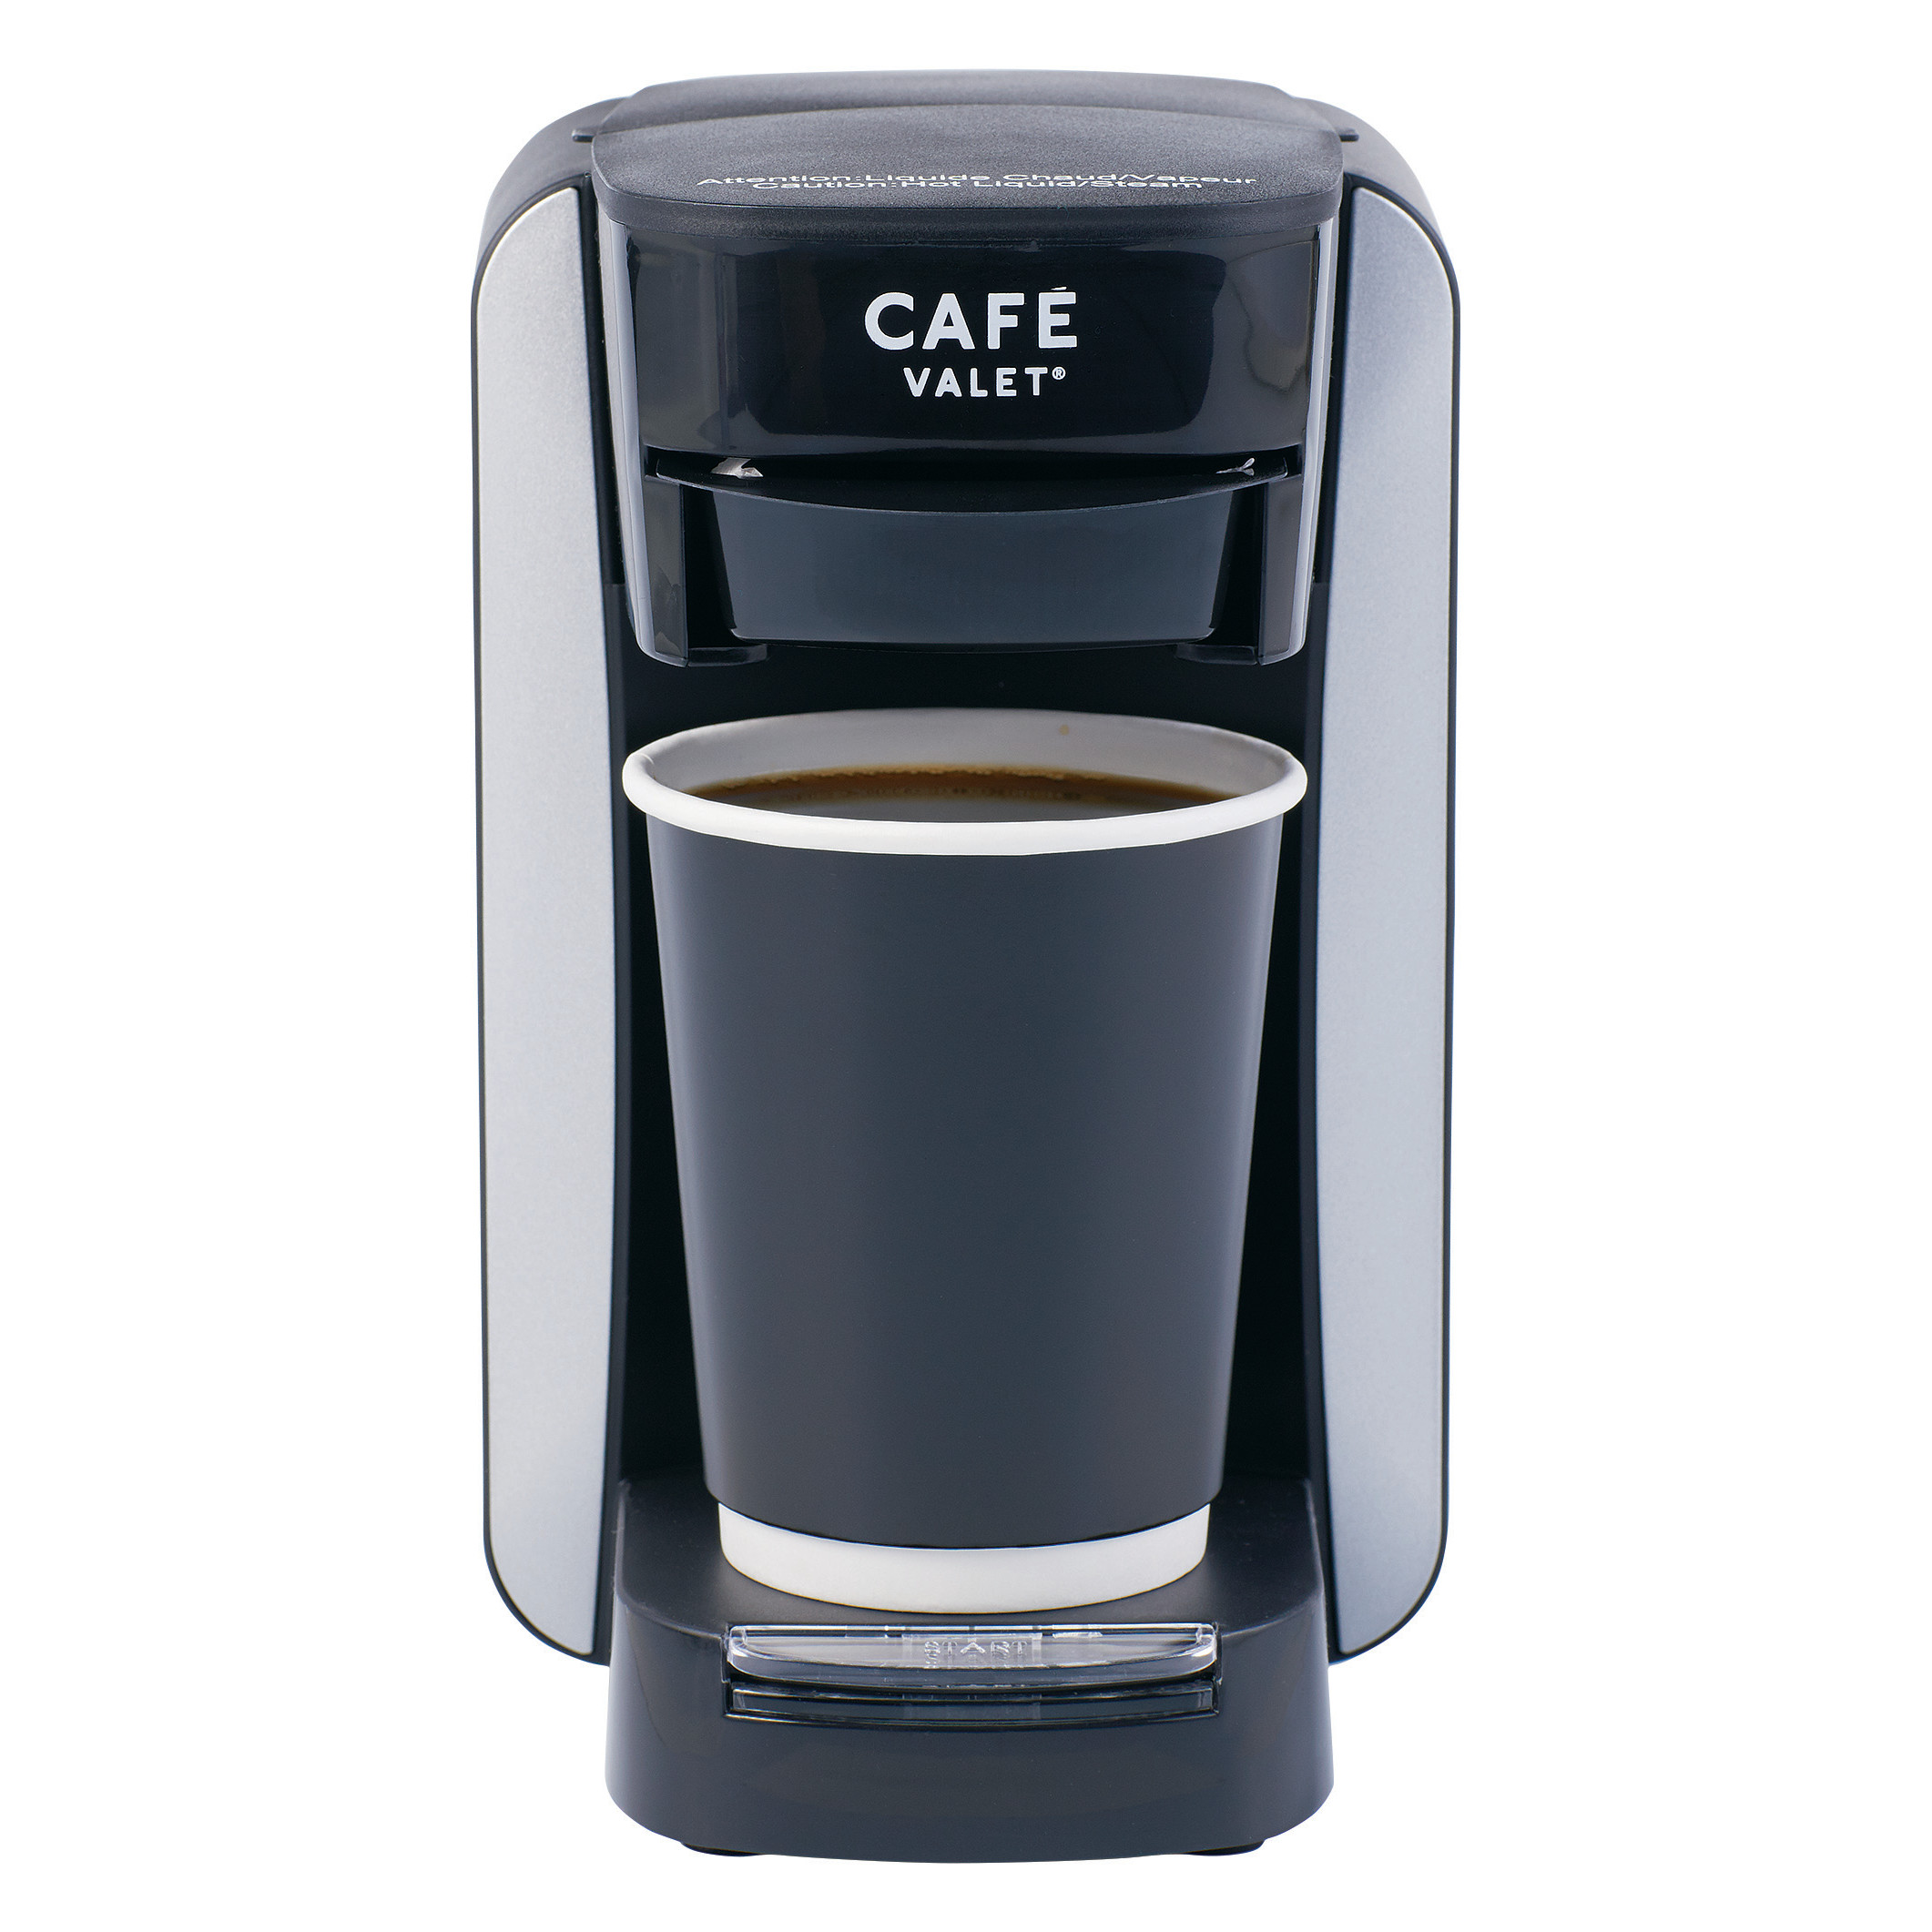 Cafe Valet Single Serve Coffee Maker Brews 10 Ounces Of Coffee Or Hot Water Compatible With Cafe Valet Coffee Packs Walmart Com Walmart Com